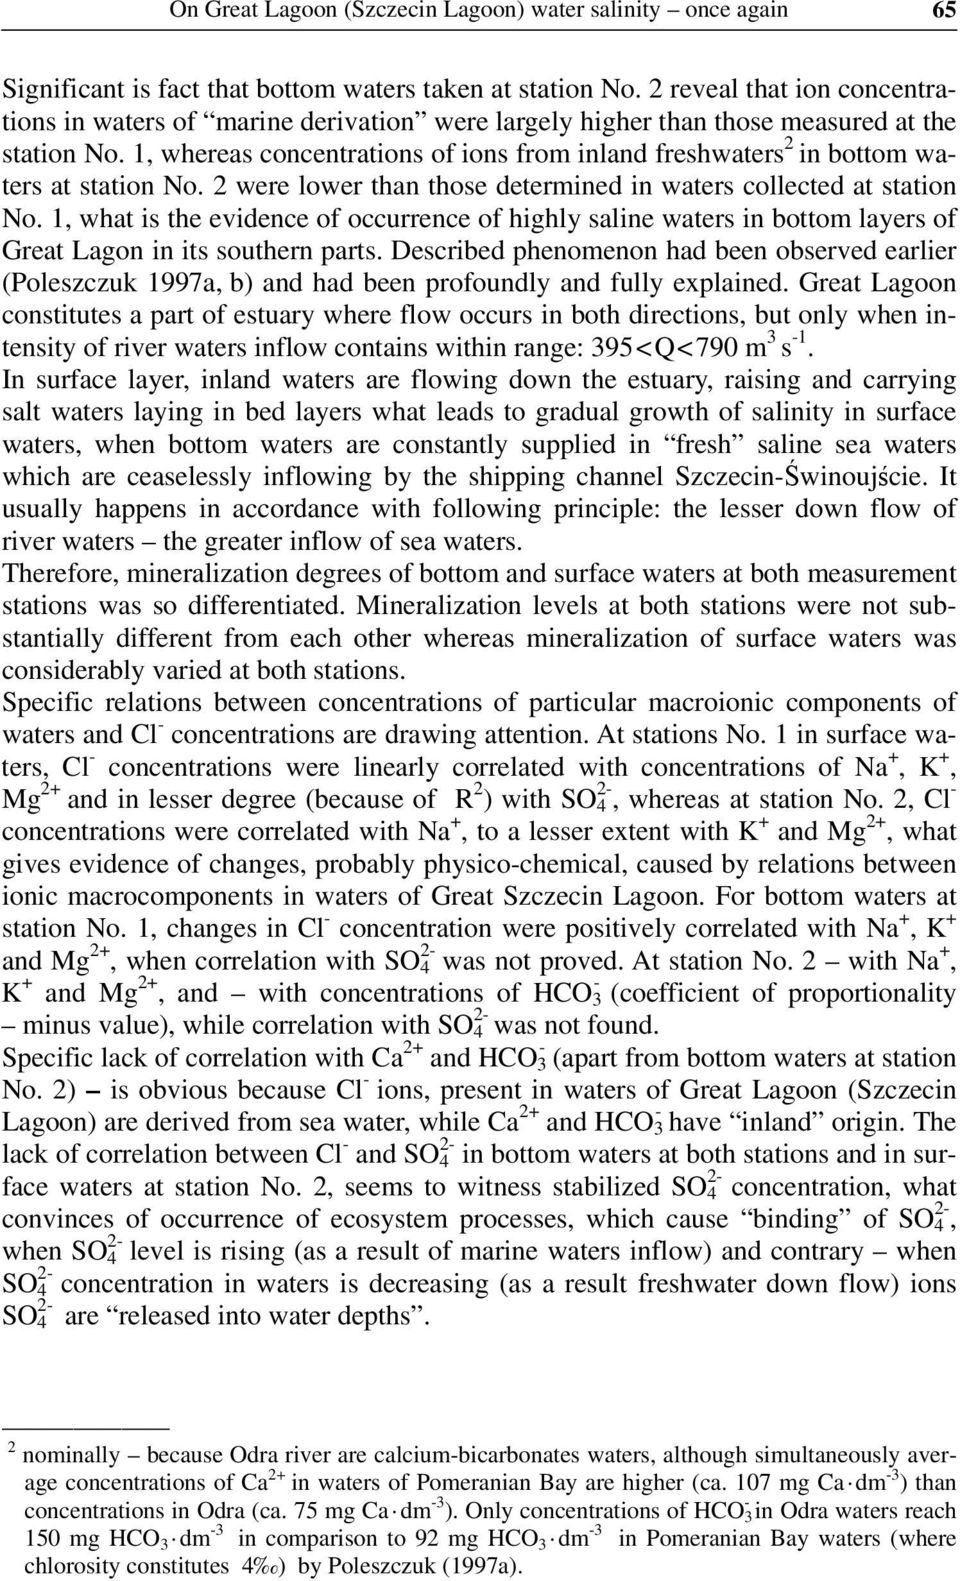 1, whereas concentrations of ions from inland freshwaters 2 in bottom waters at station No. 2 were lower than those determined in waters collected at station No.